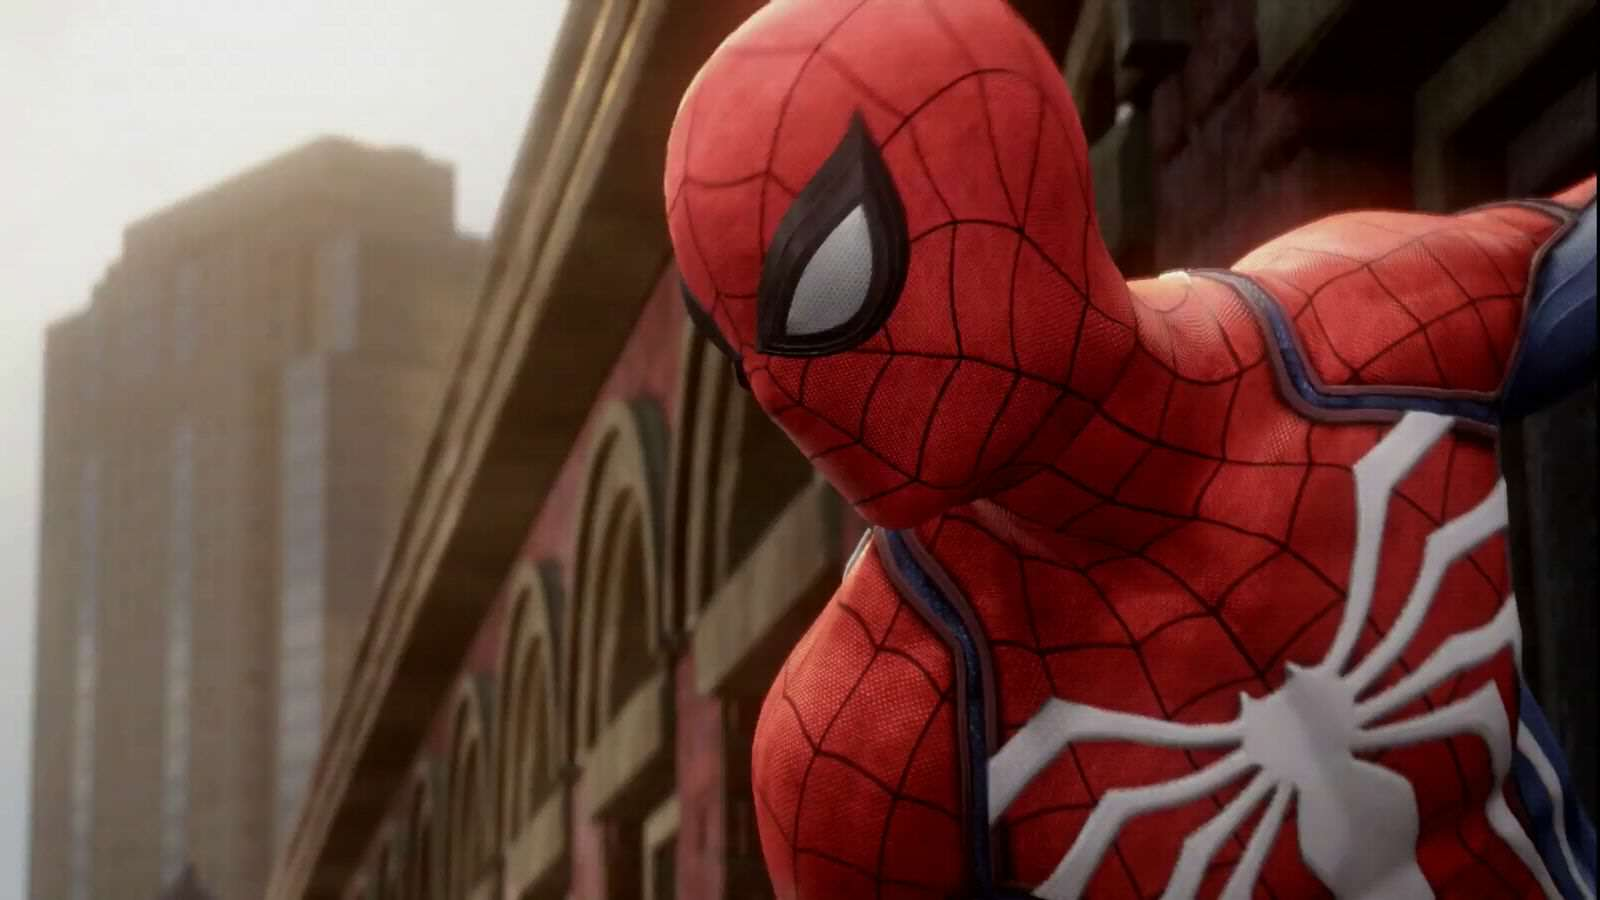 Spider Man Game Coming From Ratchet & Clank Devs spider man insomniac screencap 1920.0.0